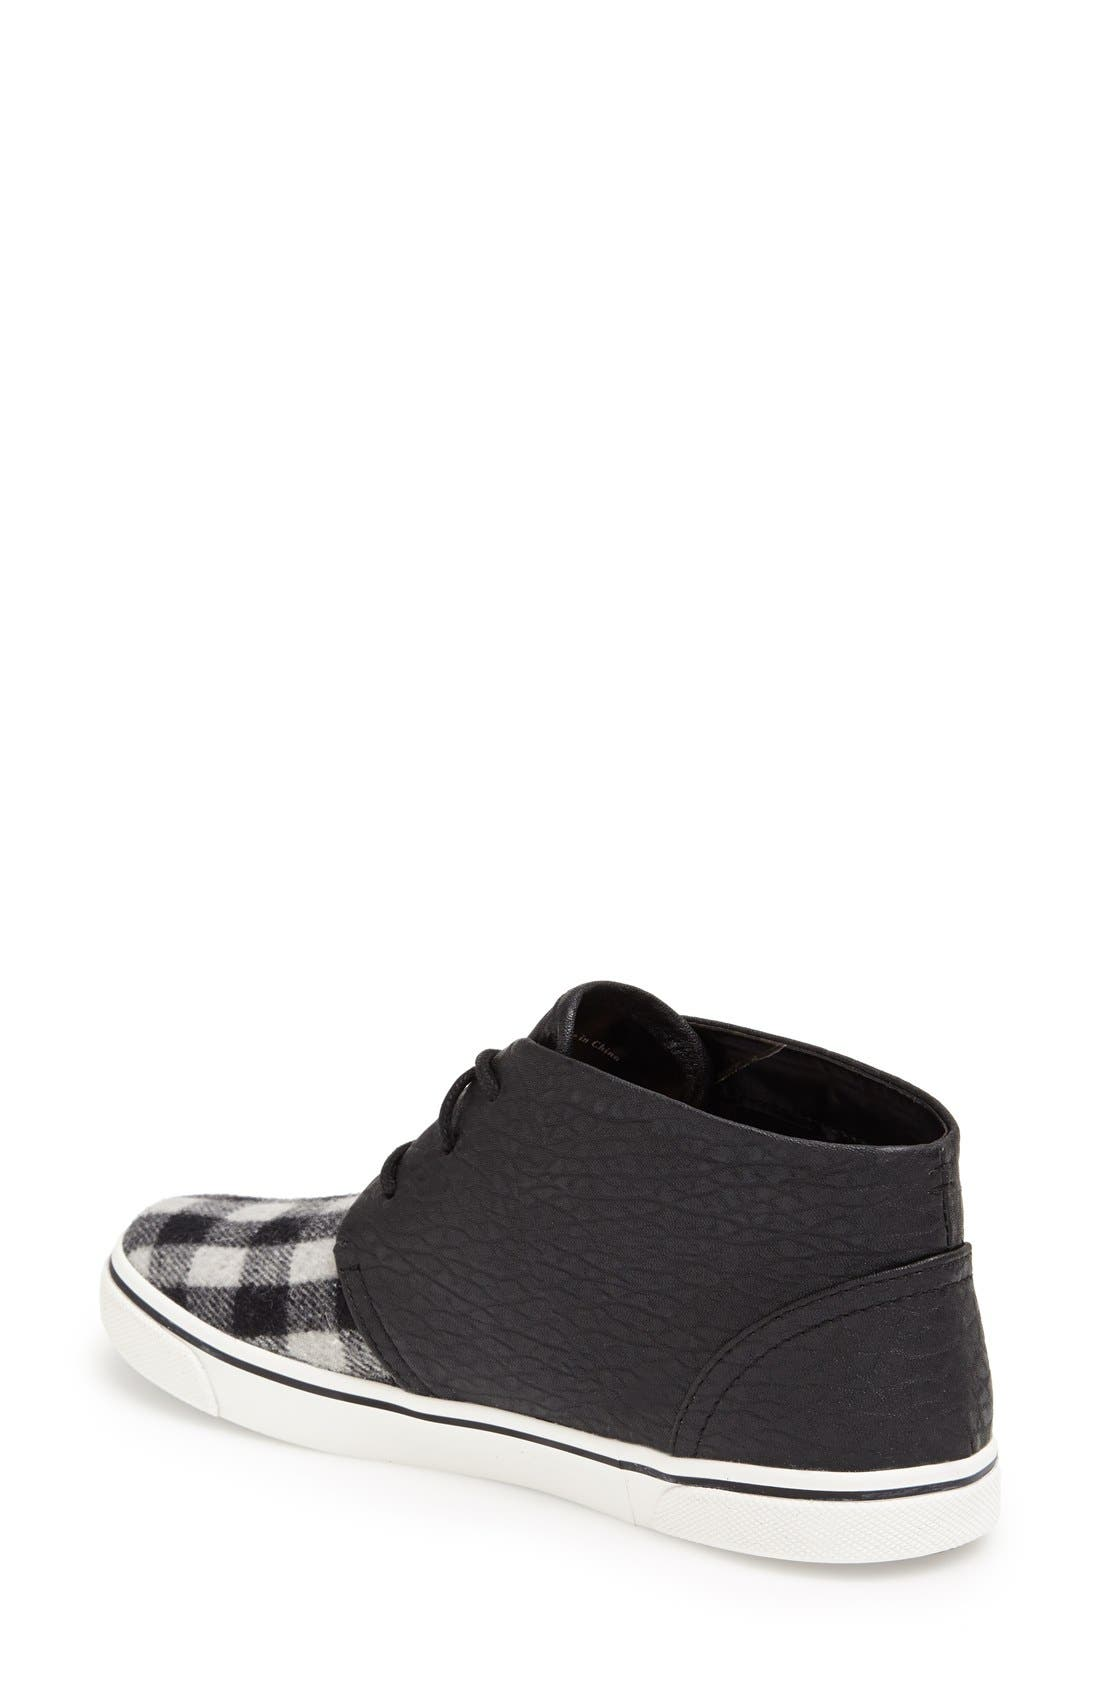 DV by Dolce Vita 'Giaa' Sneaker,                             Alternate thumbnail 2, color,                             Charcoal/ Black